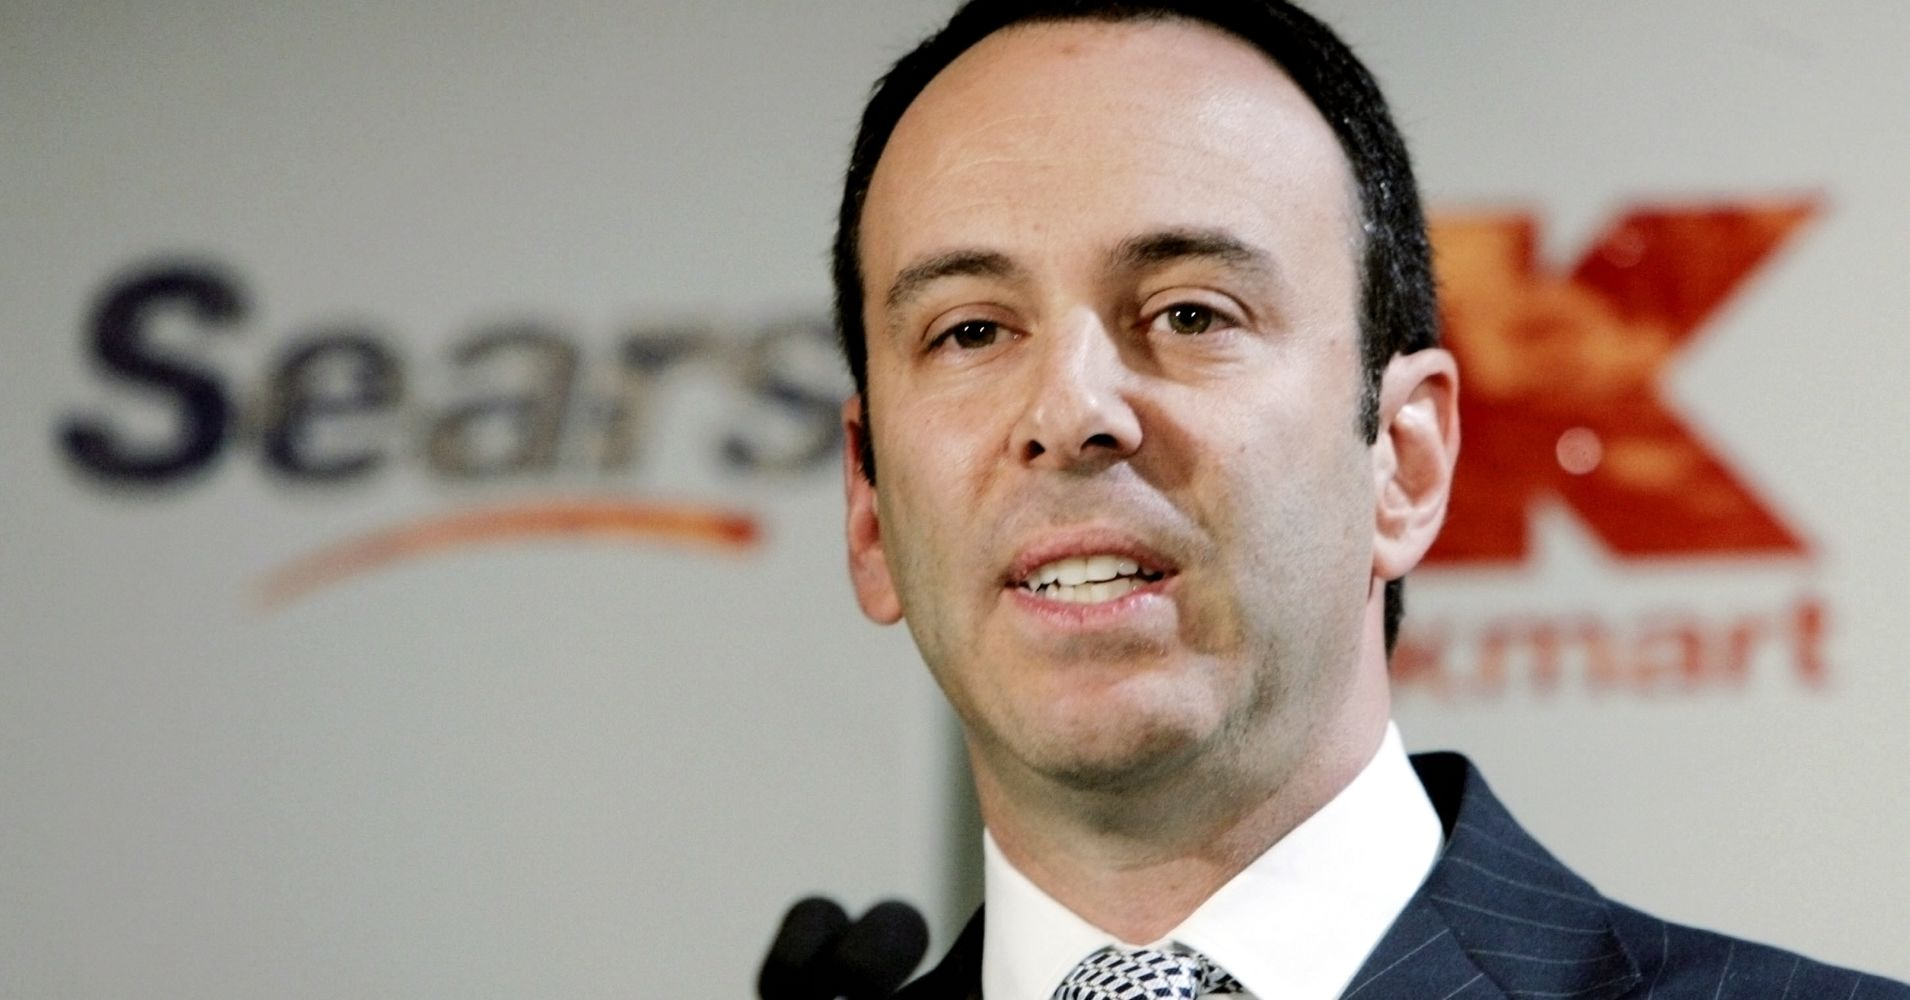 Sears sues Eddie Lampert, Steven Mnuchin, others, for alleged 'thefts'